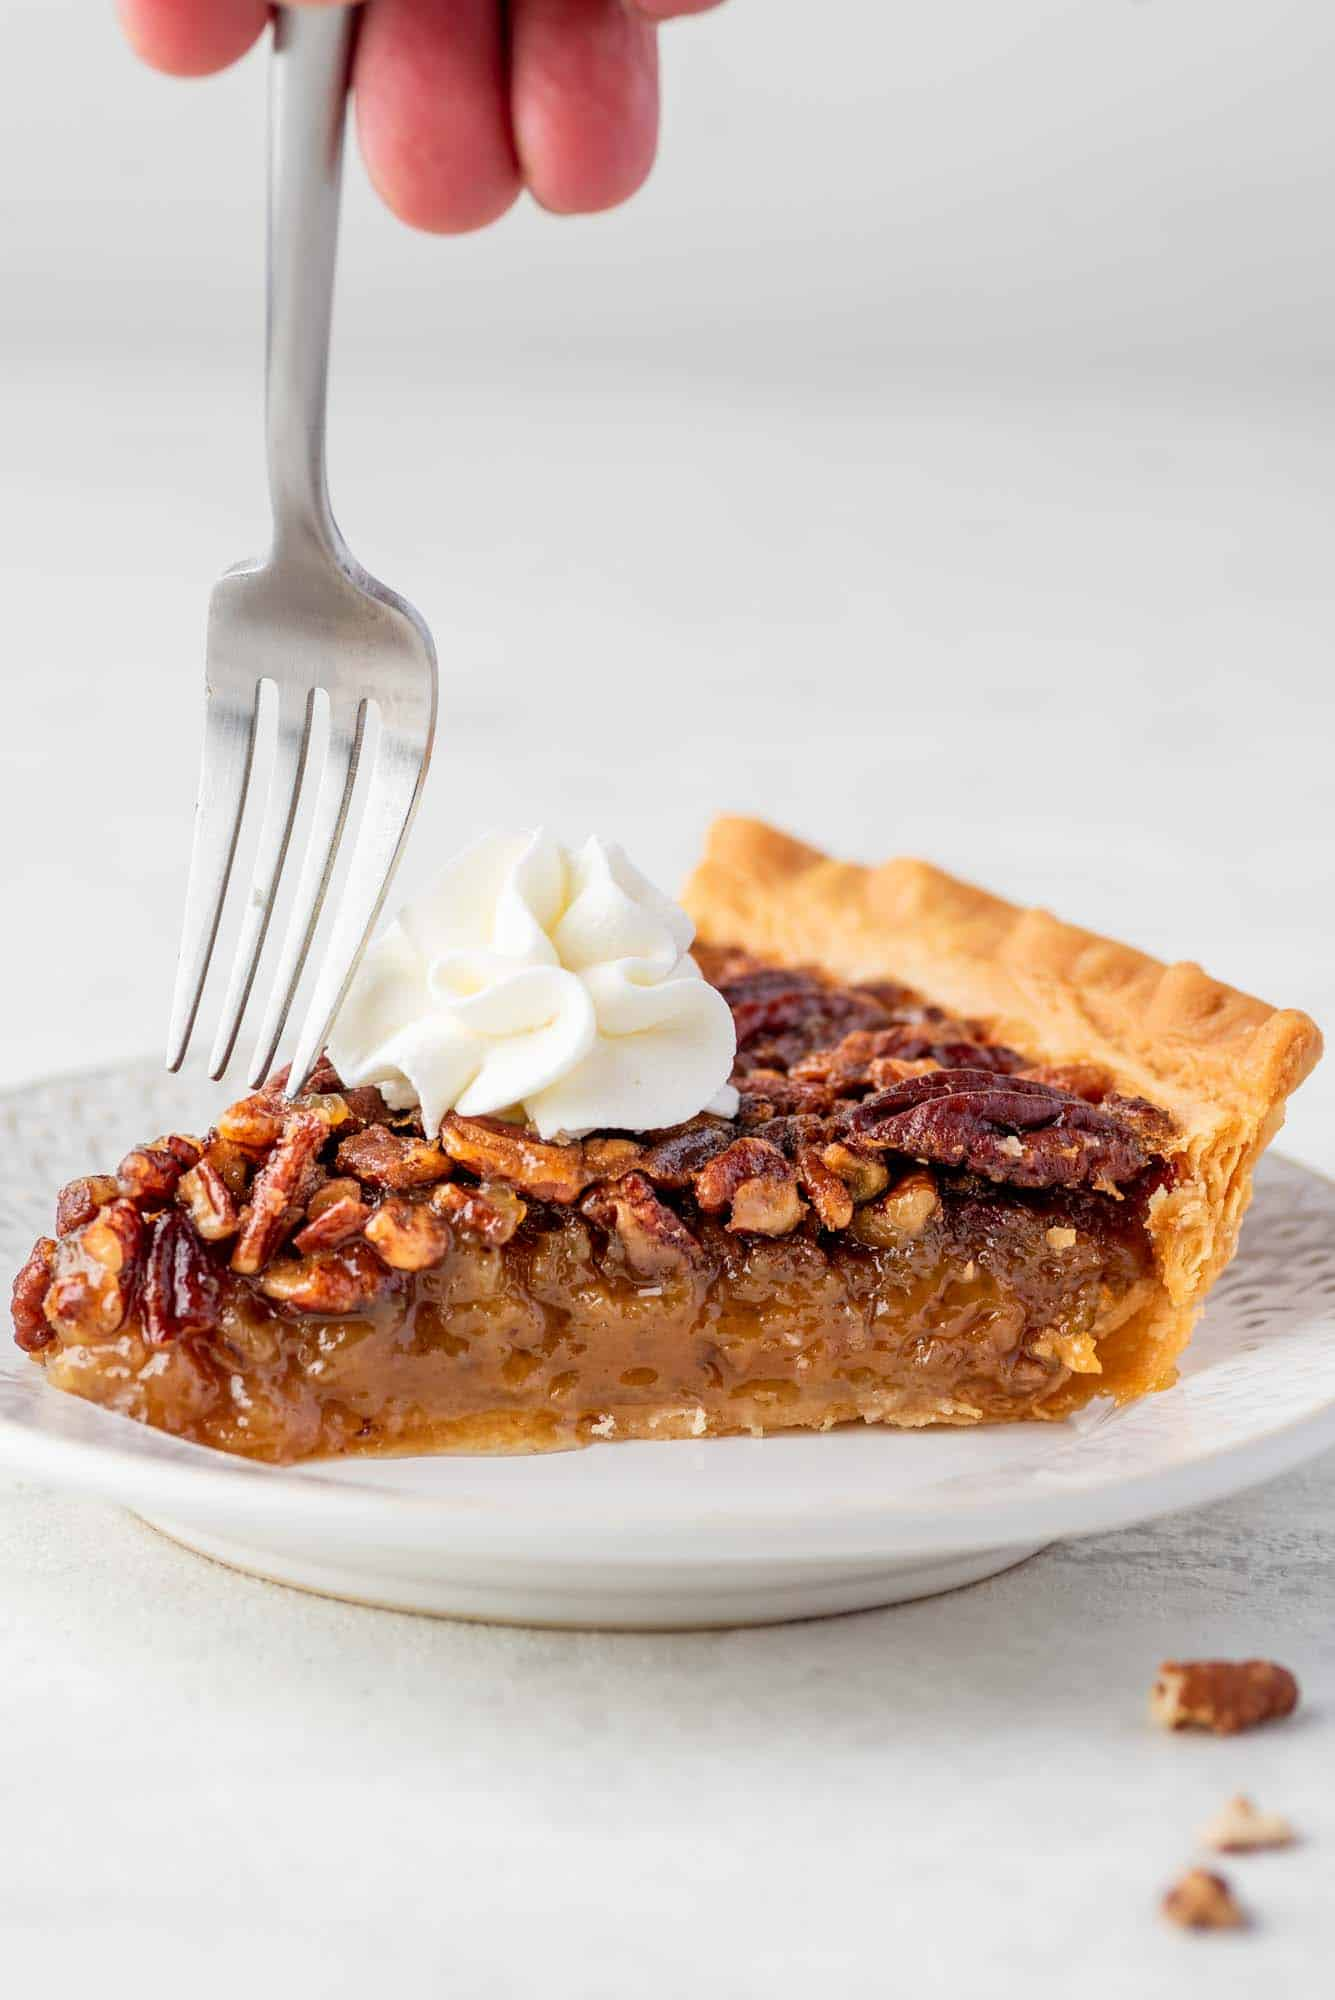 Taking a bite of pecan pie with a fork